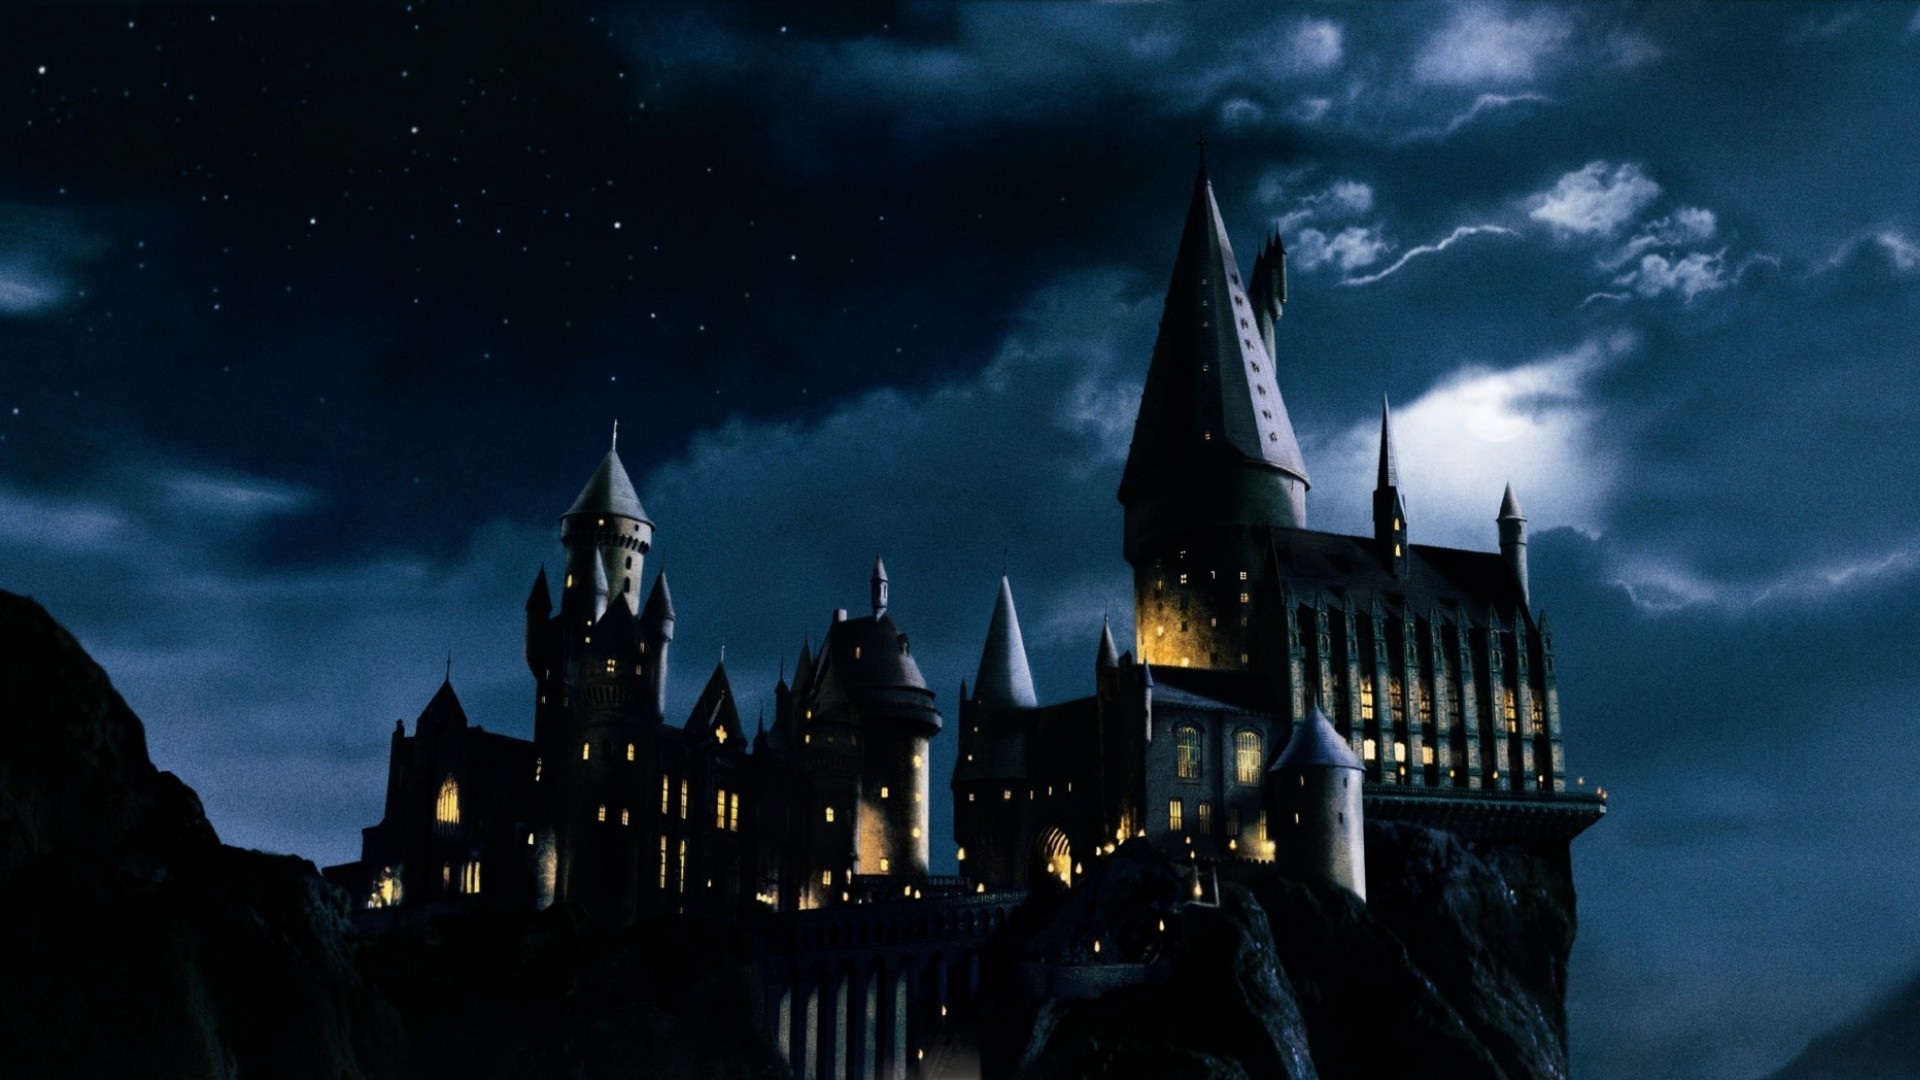 Free Download Harry Potter Wallpaper Hogwarts 1920x1080 For Your